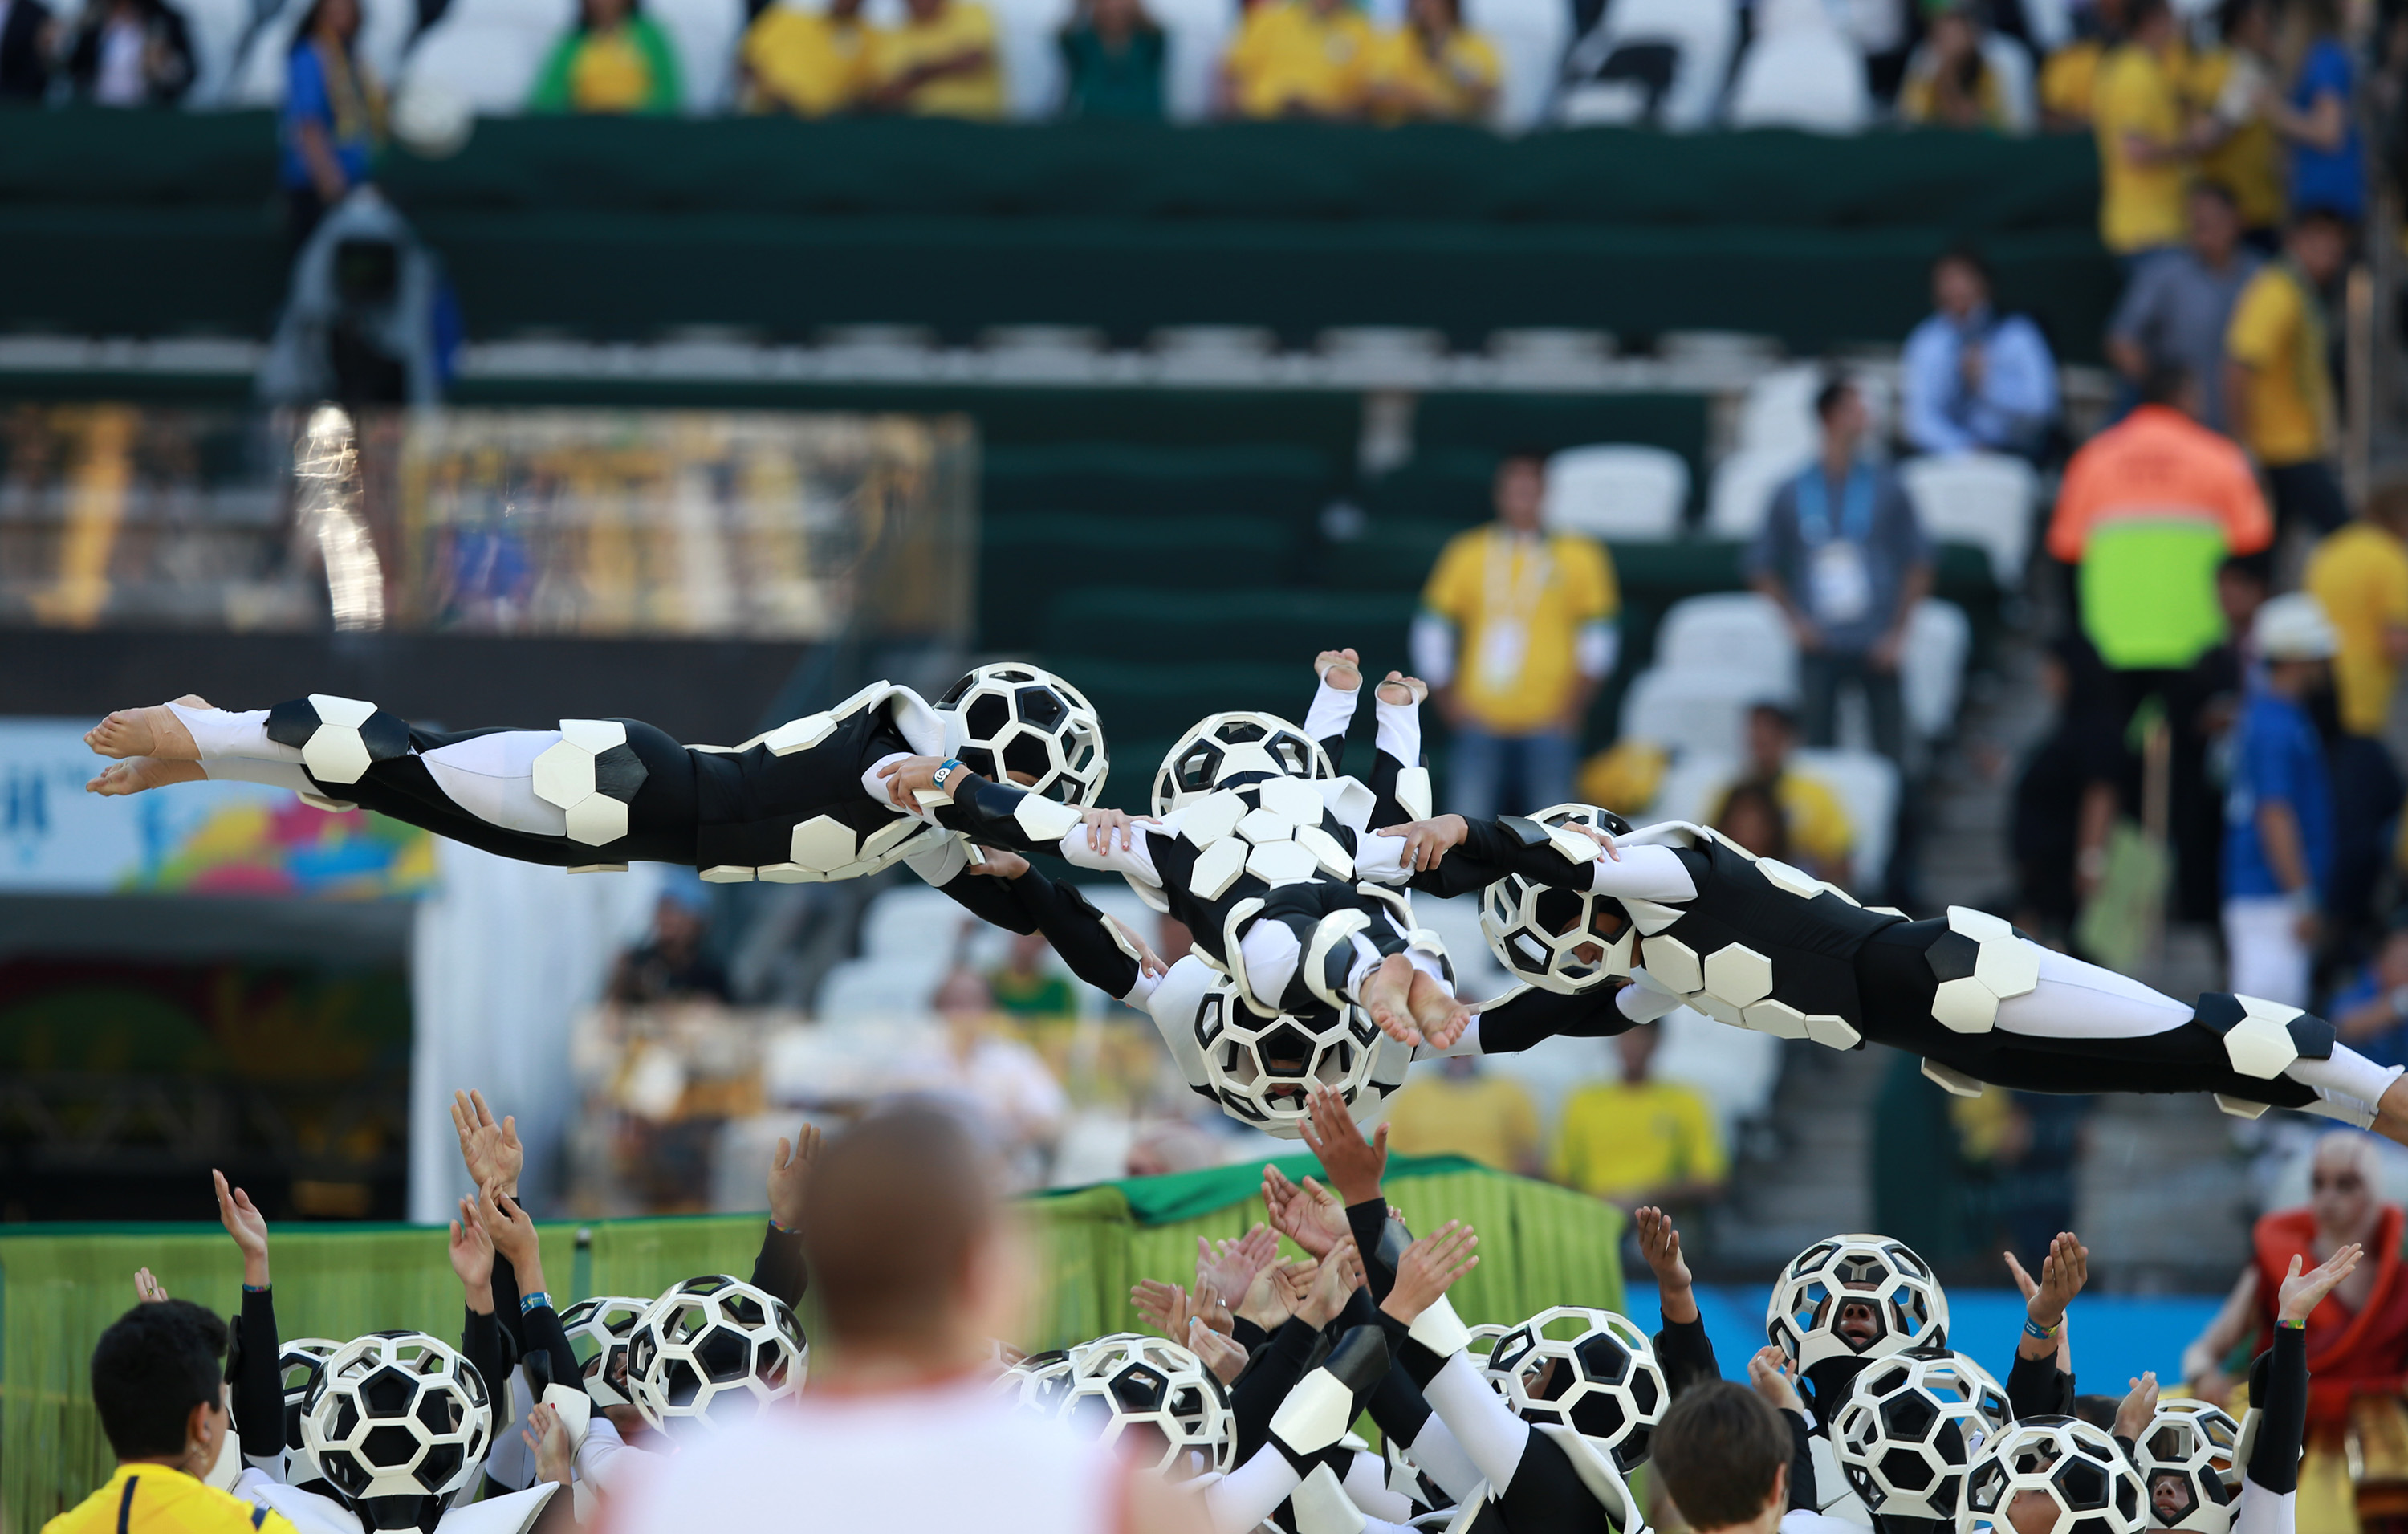 File:The opening ceremony of the FIFA World Cup 2014 35 ...